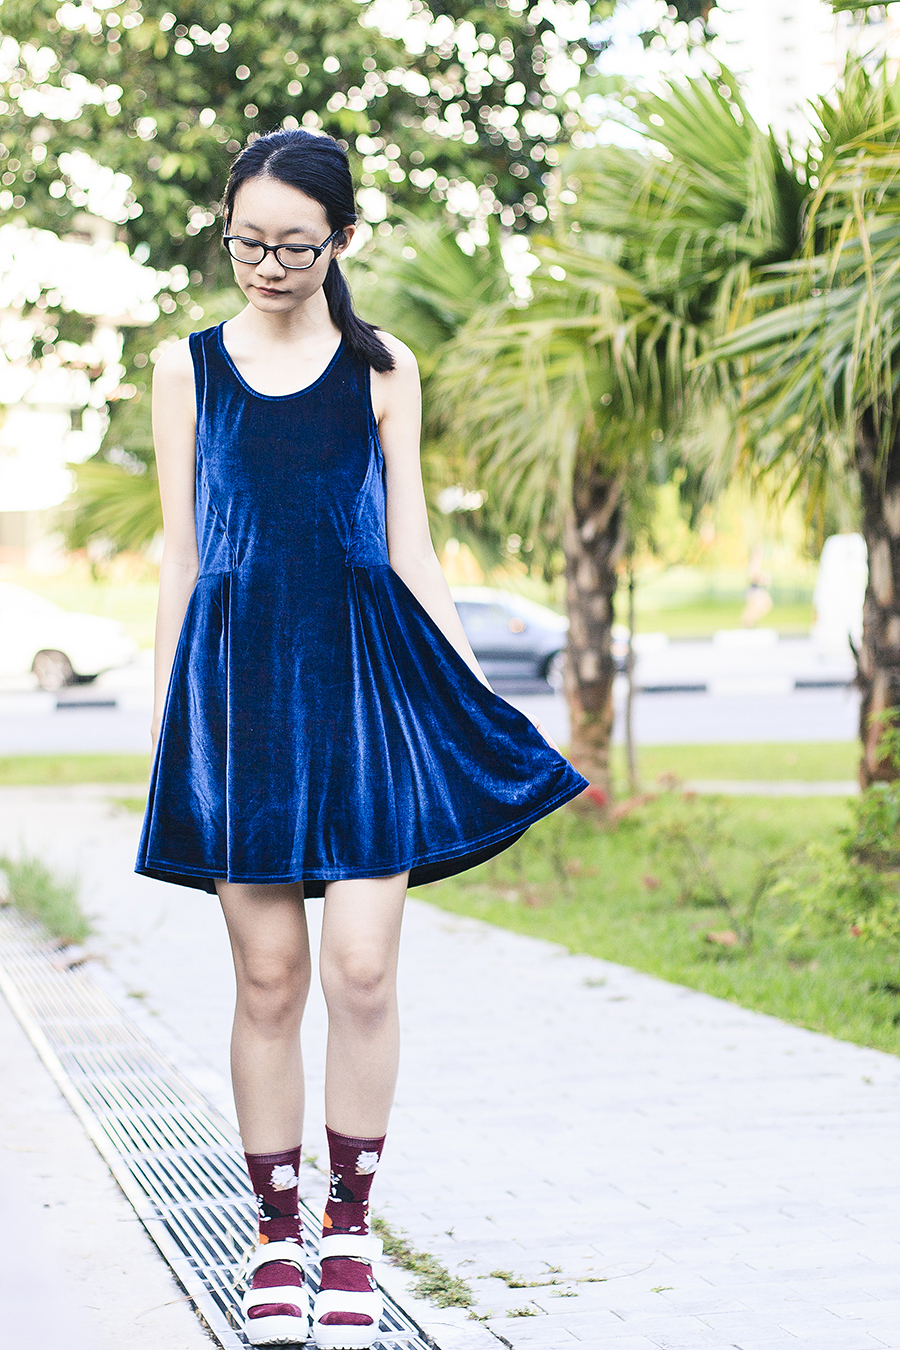 Blue velvet dress from Cotton On, black frame prescription glasses from Gap, cat socks from Taobao, white platform sandals from Taobao.